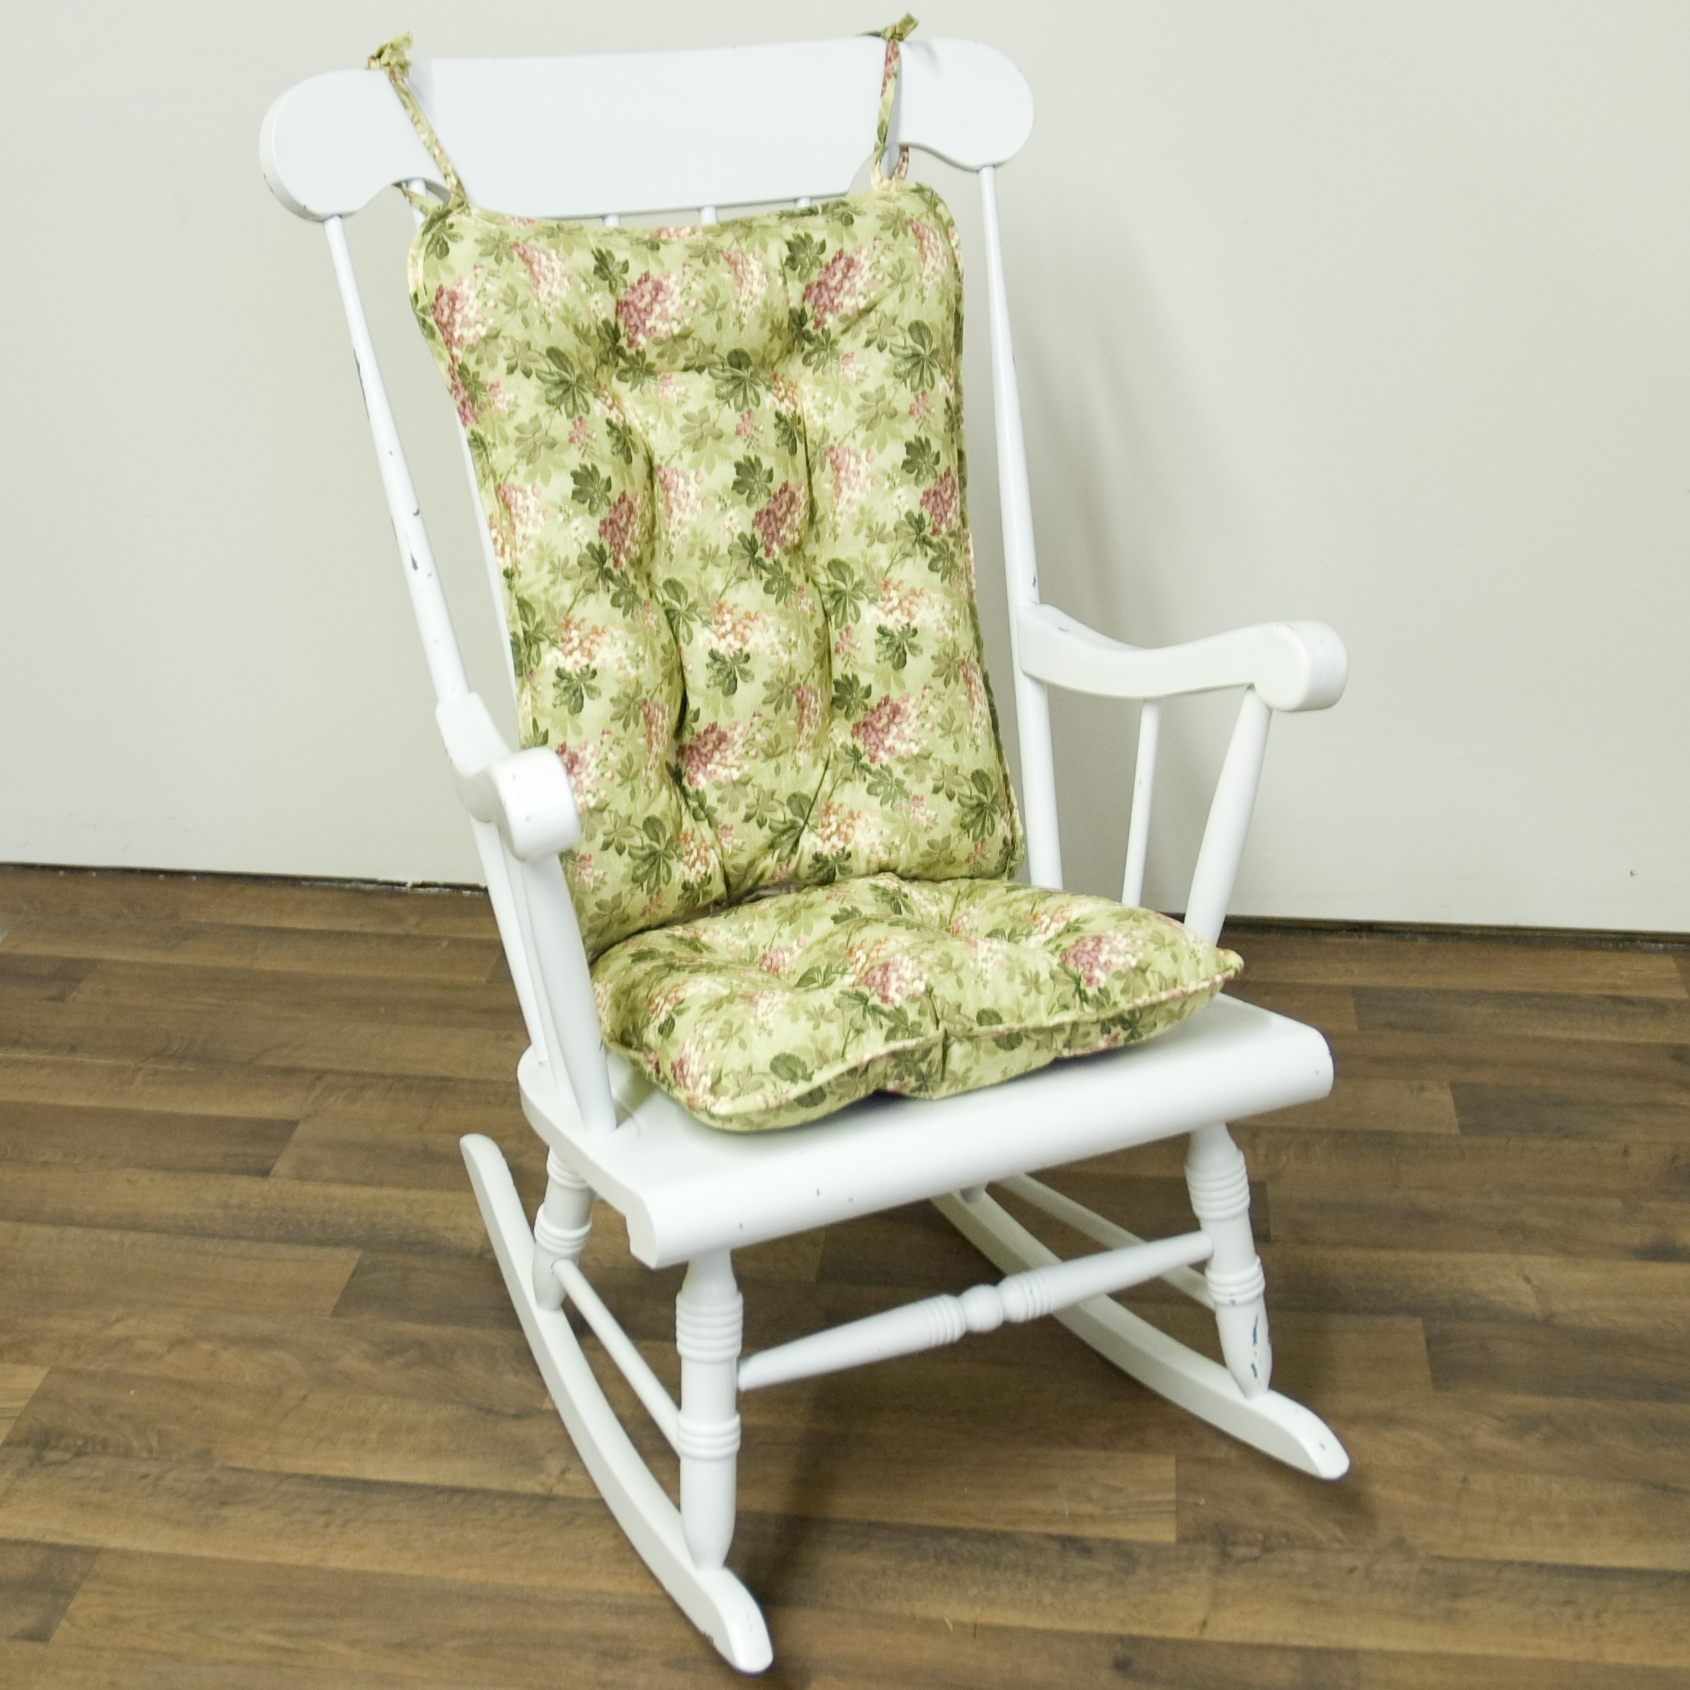 Most Popular Outdoor Rocking Chair Cushions Flower : Beautiful Outdoor Rocking With Rocking Chair Cushions For Outdoor (View 6 of 15)